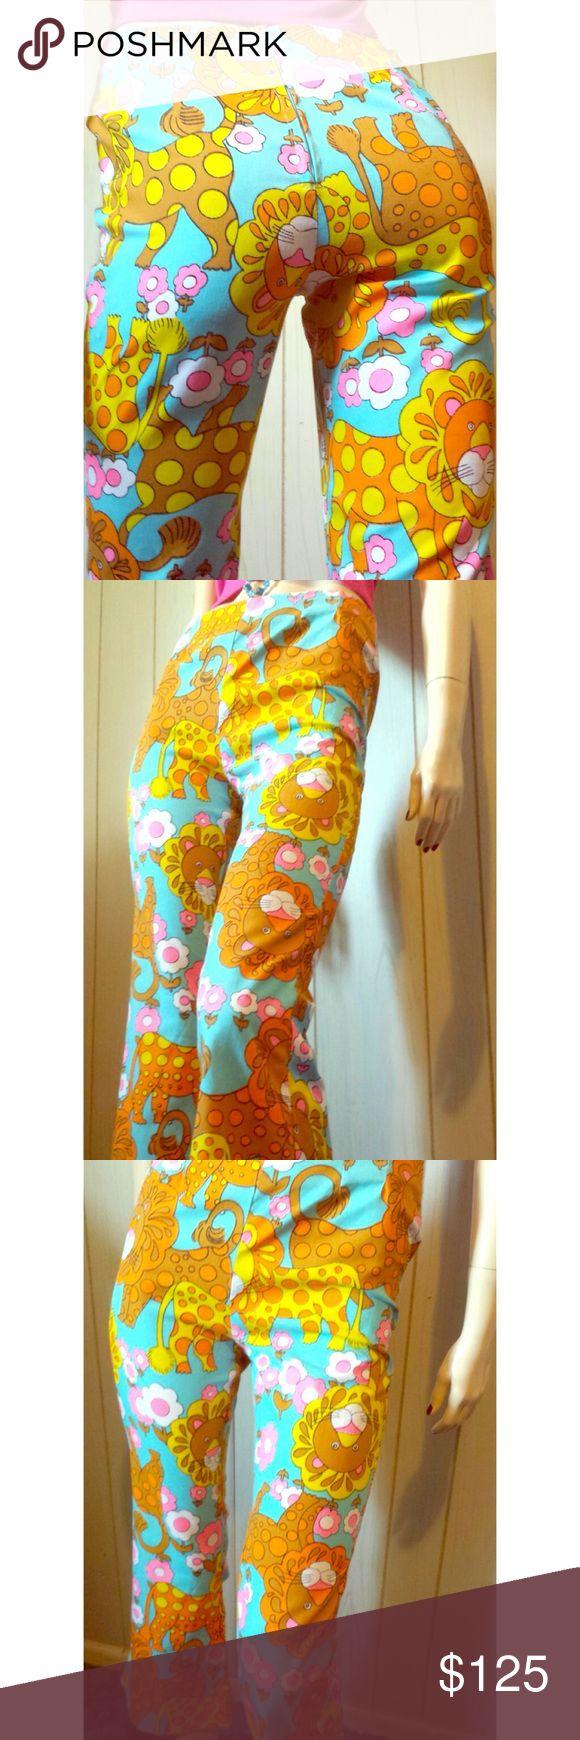 """VTG MOD King of the Jungle Lion Print Kitty Pants Wow! Vintage 60s MOD jungle/lion flower-power print cropped cotton pants. Adorable lion print is ultra bright in BOLD colors. Pocketless w/back zip. Formfitted at hip & thigh, flairy bell bottom cropped legs. Fierce & Fabulous is putting it mildly.  DETAILS:No stretch to fabric SZ:N/A Fit like a Ladies XS Waist:27-28"""" Hips:up to approx 34-35"""" Length:Inseam is 24"""", total length 34"""" w/1.5"""" hem can be let down if needed.  Rise:10"""" Label:N/A…"""